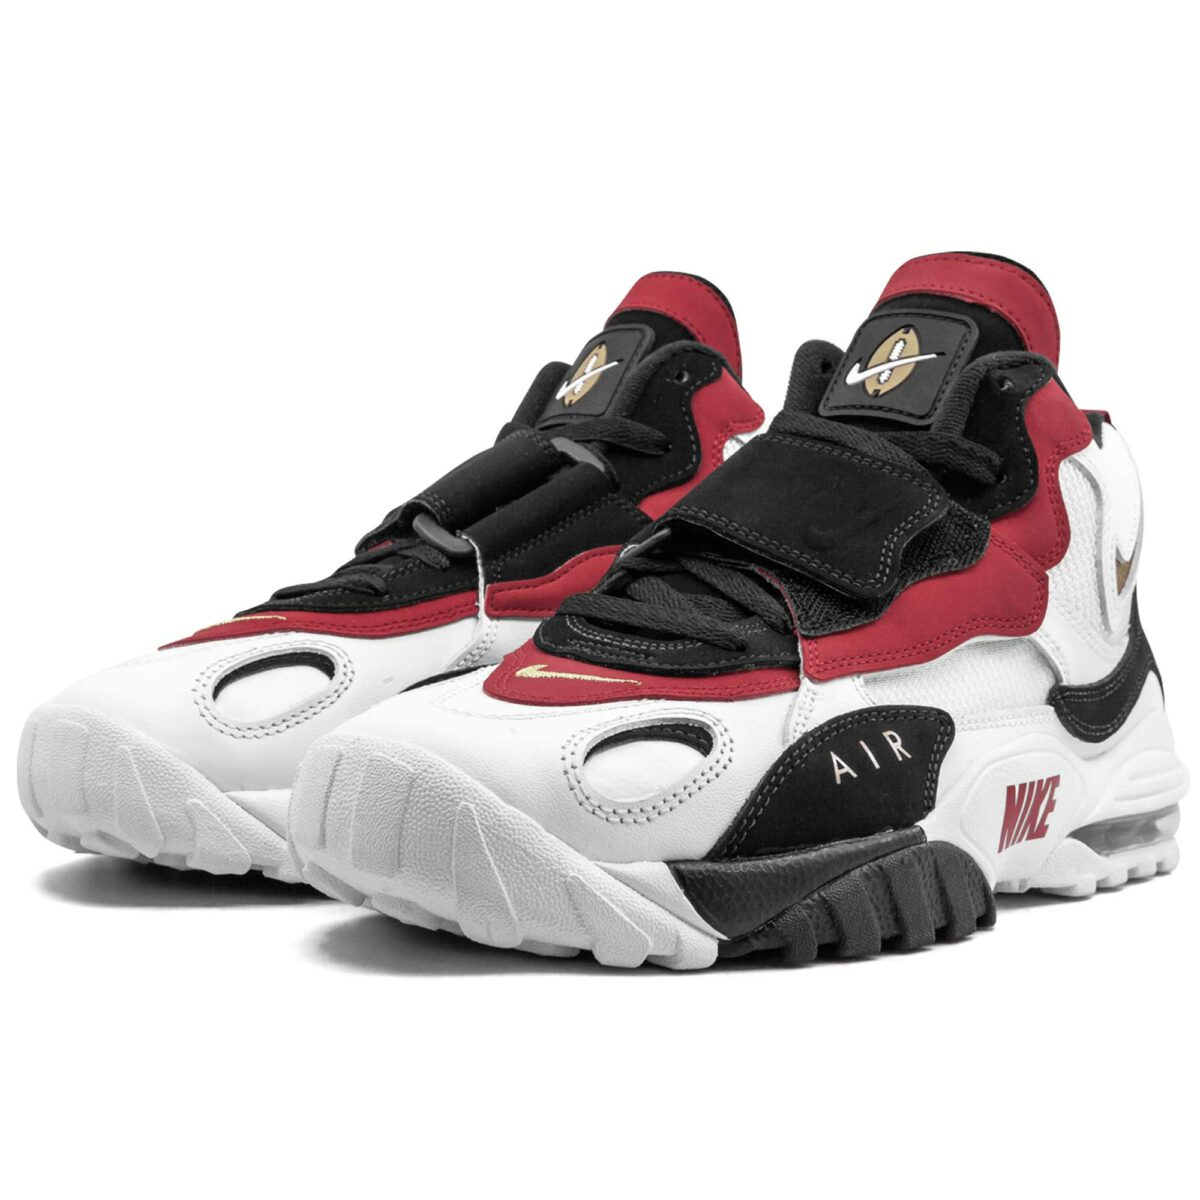 nike air max speed ​​turf white red 525225_101 купить